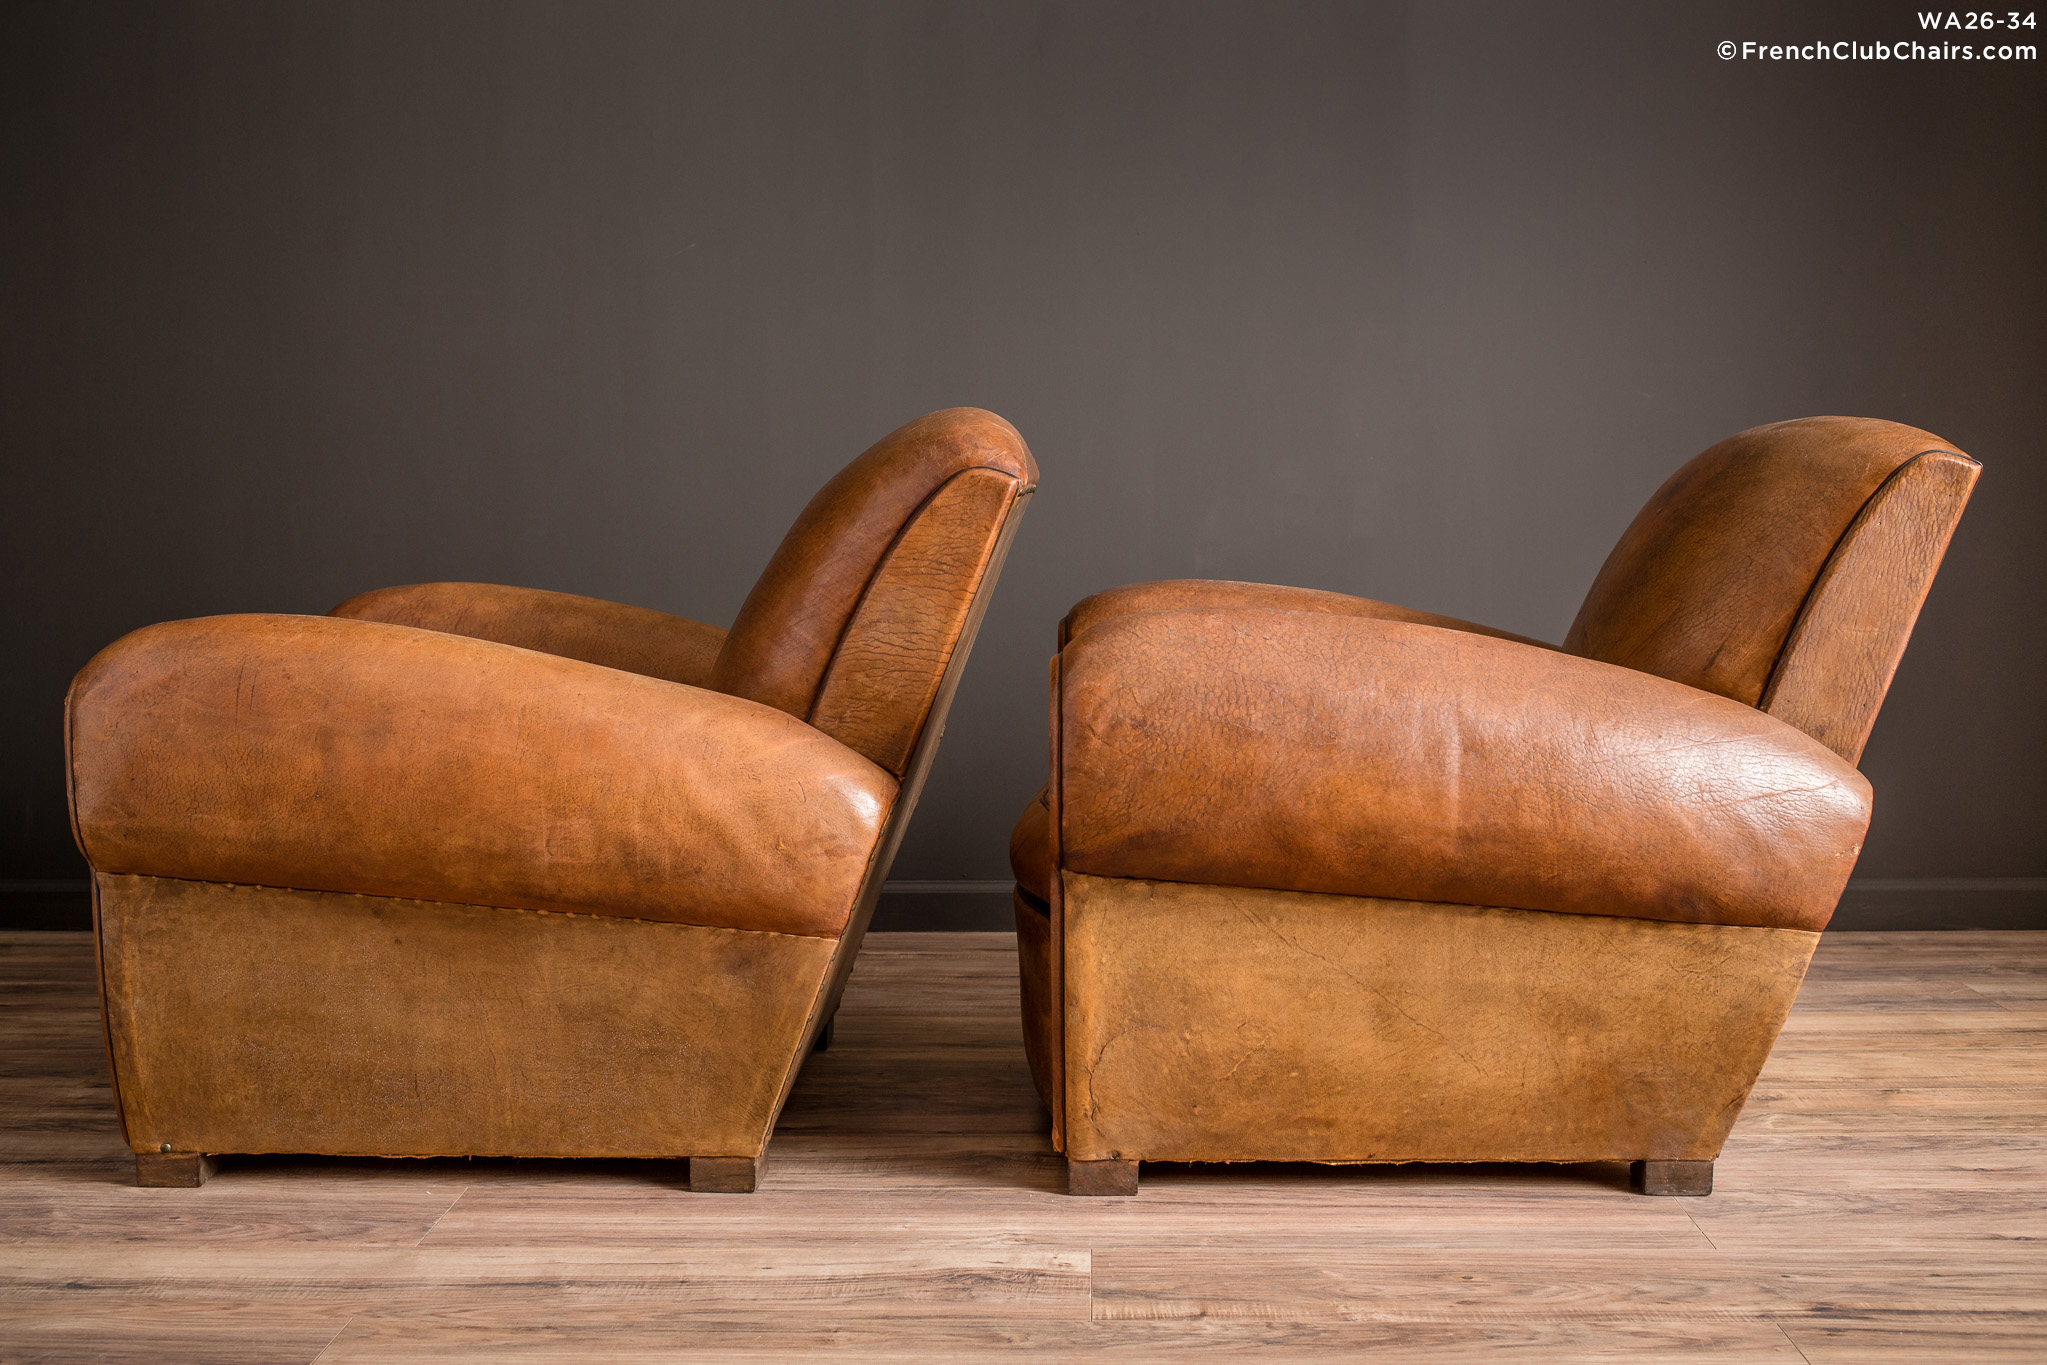 WA_26-34_Degaulle_Giant_Lounge_Pair_R_4LT-v01-williams-antiks-leather-french-club-chair-wa_fcccom